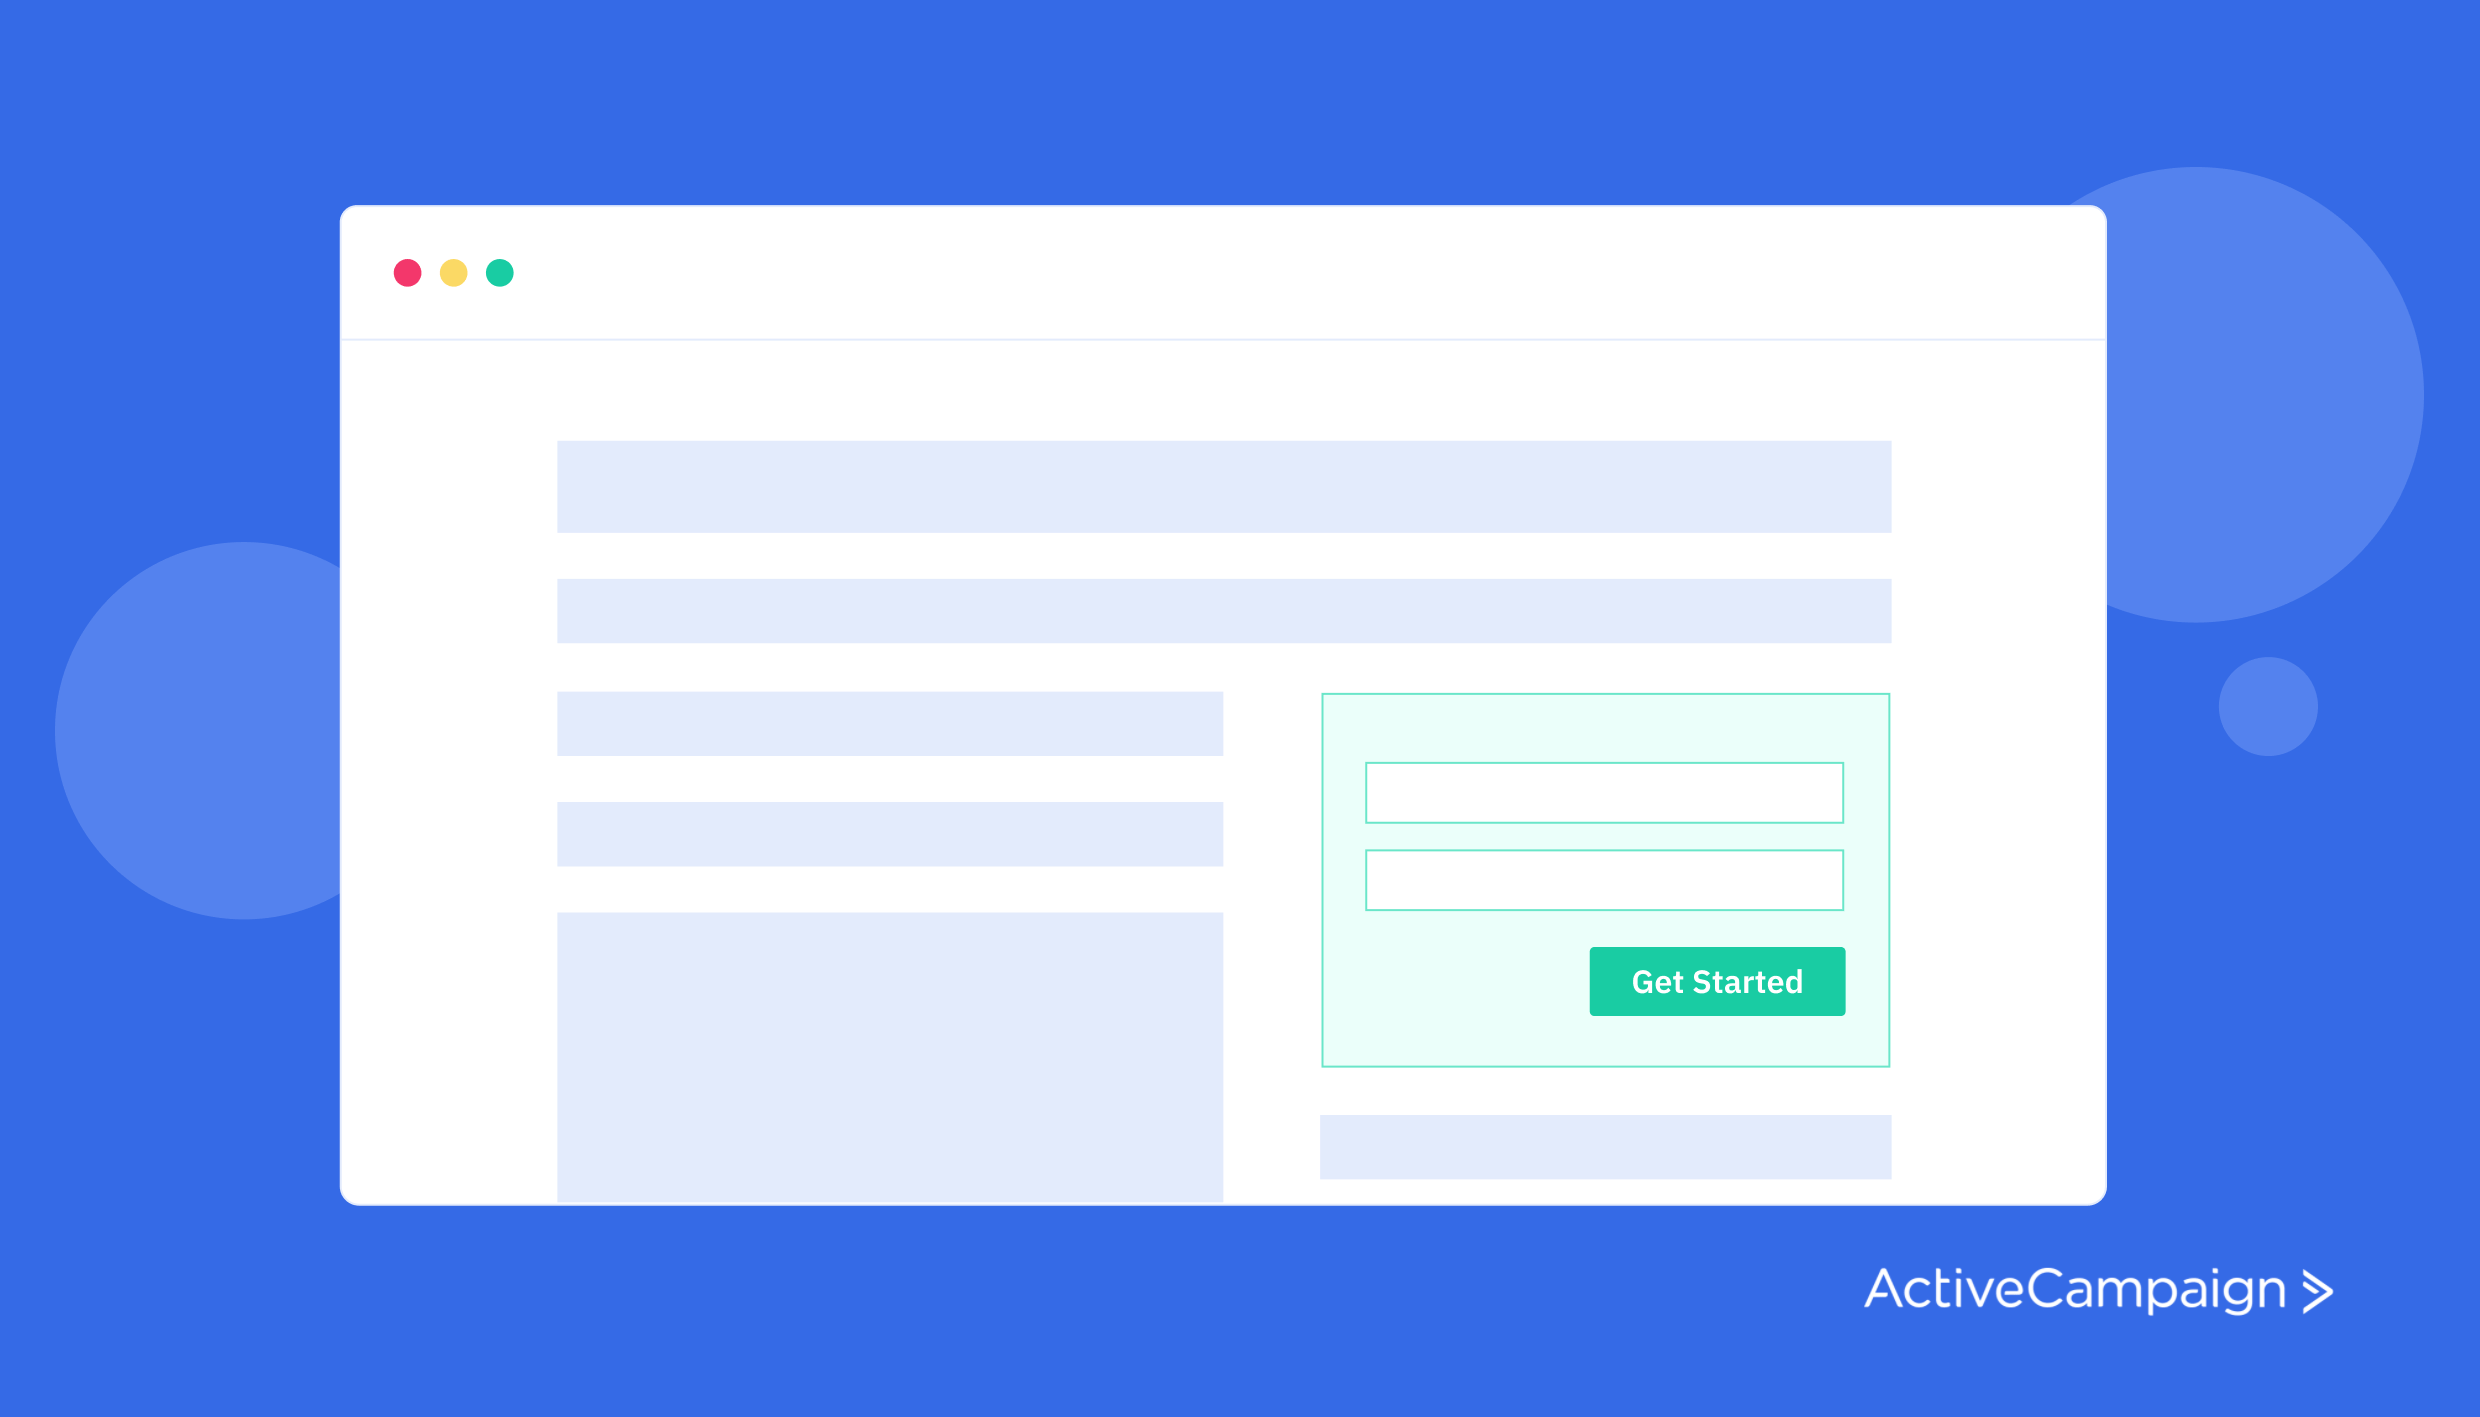 Build a high-quality email list with opt-ins